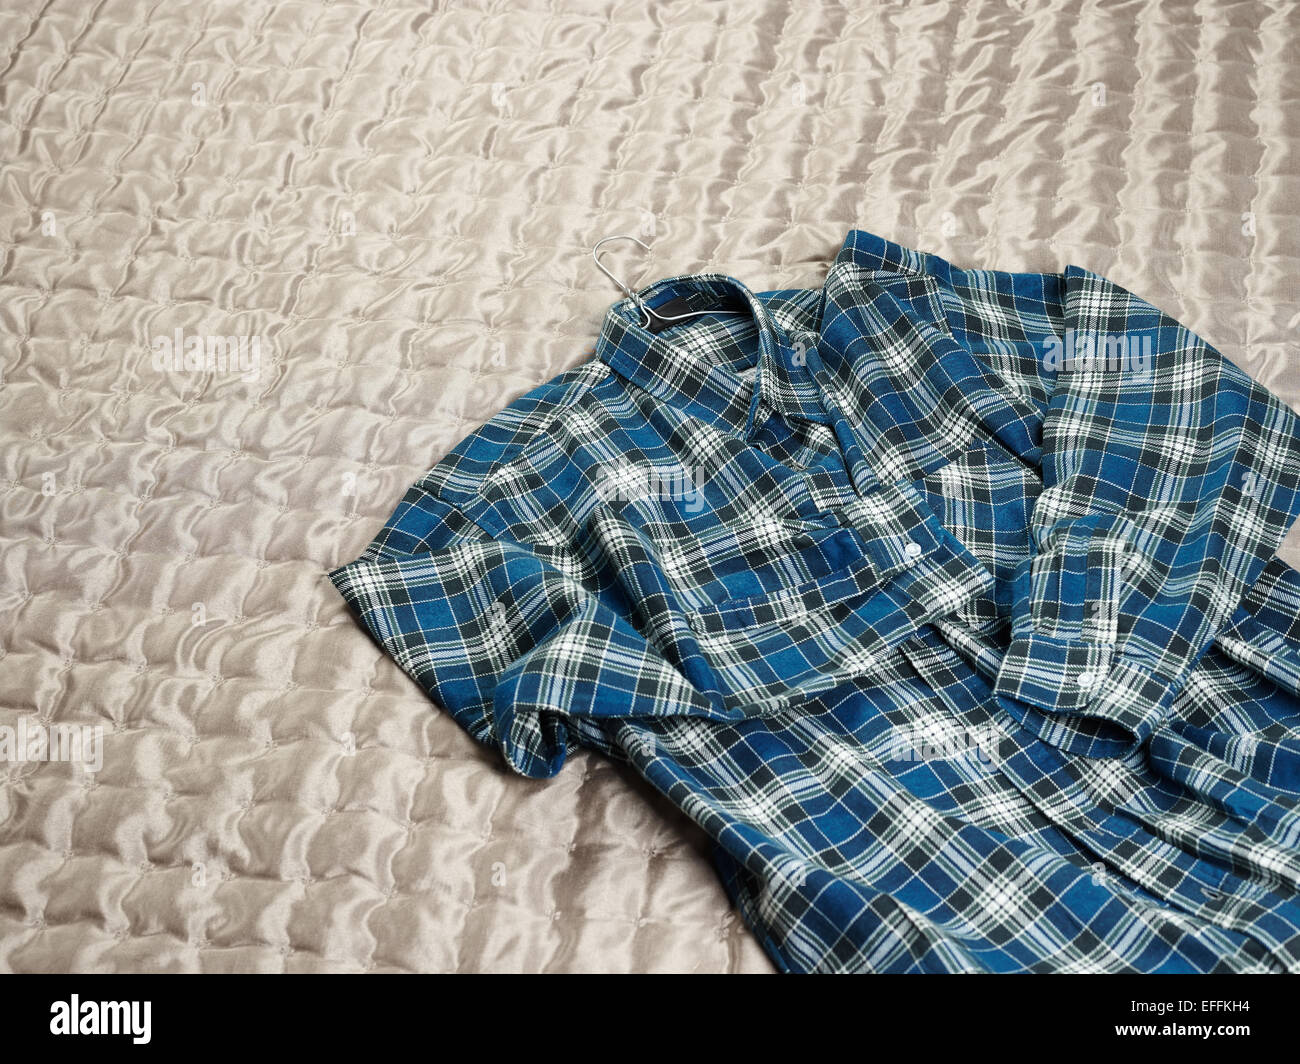 Men's casual checkered shirt on the bed - Stock Image